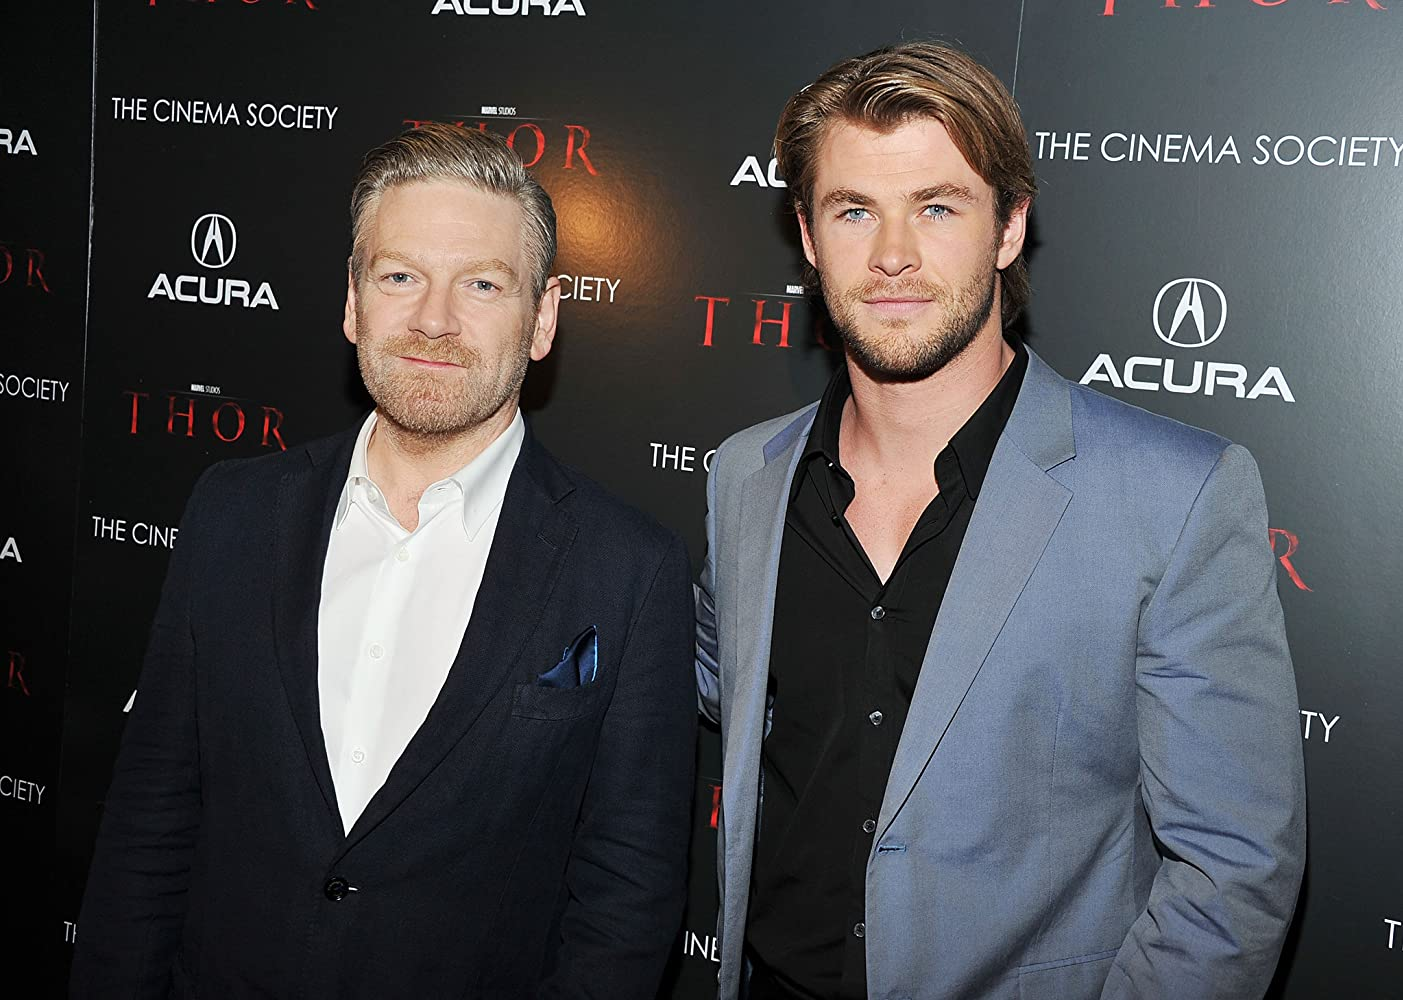 Kenneth Branagh and Chris Hemsworth at an event for Thor (2011)